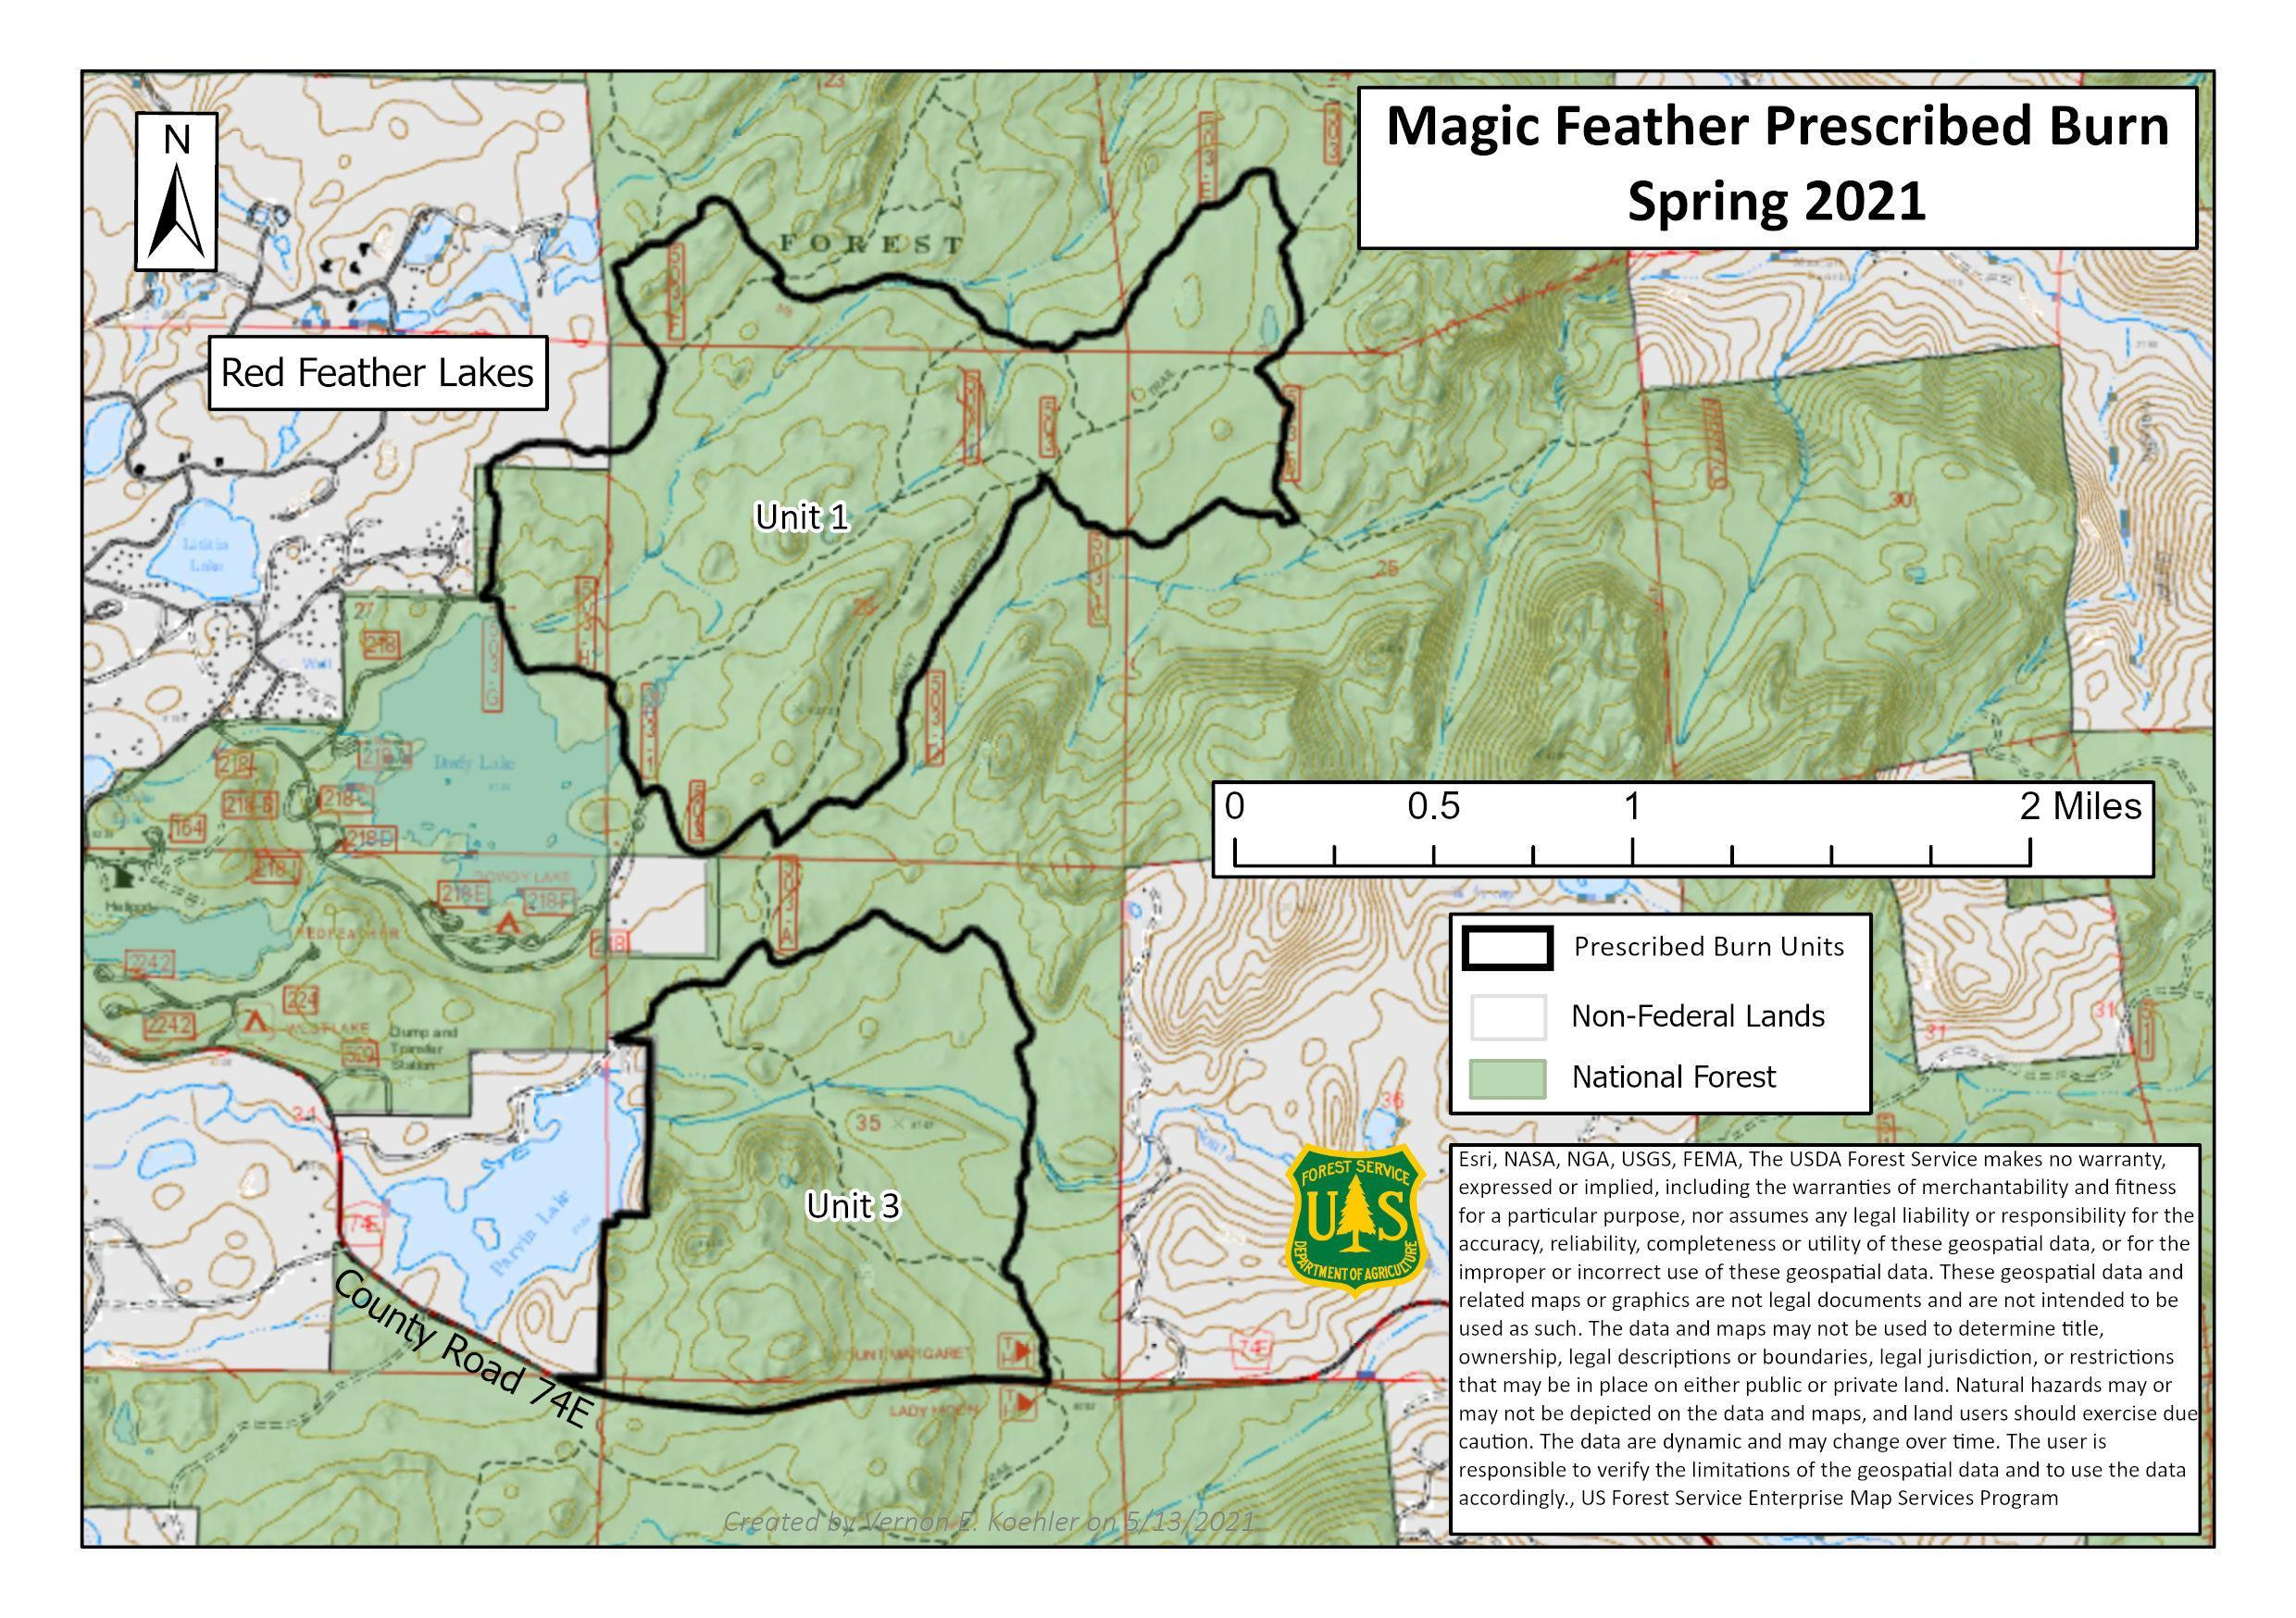 Map of Magic Feather Units 1 & 3 - Burning Planned Spring 2021 - East & Southeast of Red Feather Lakes and north of Larimer County Road 74E.